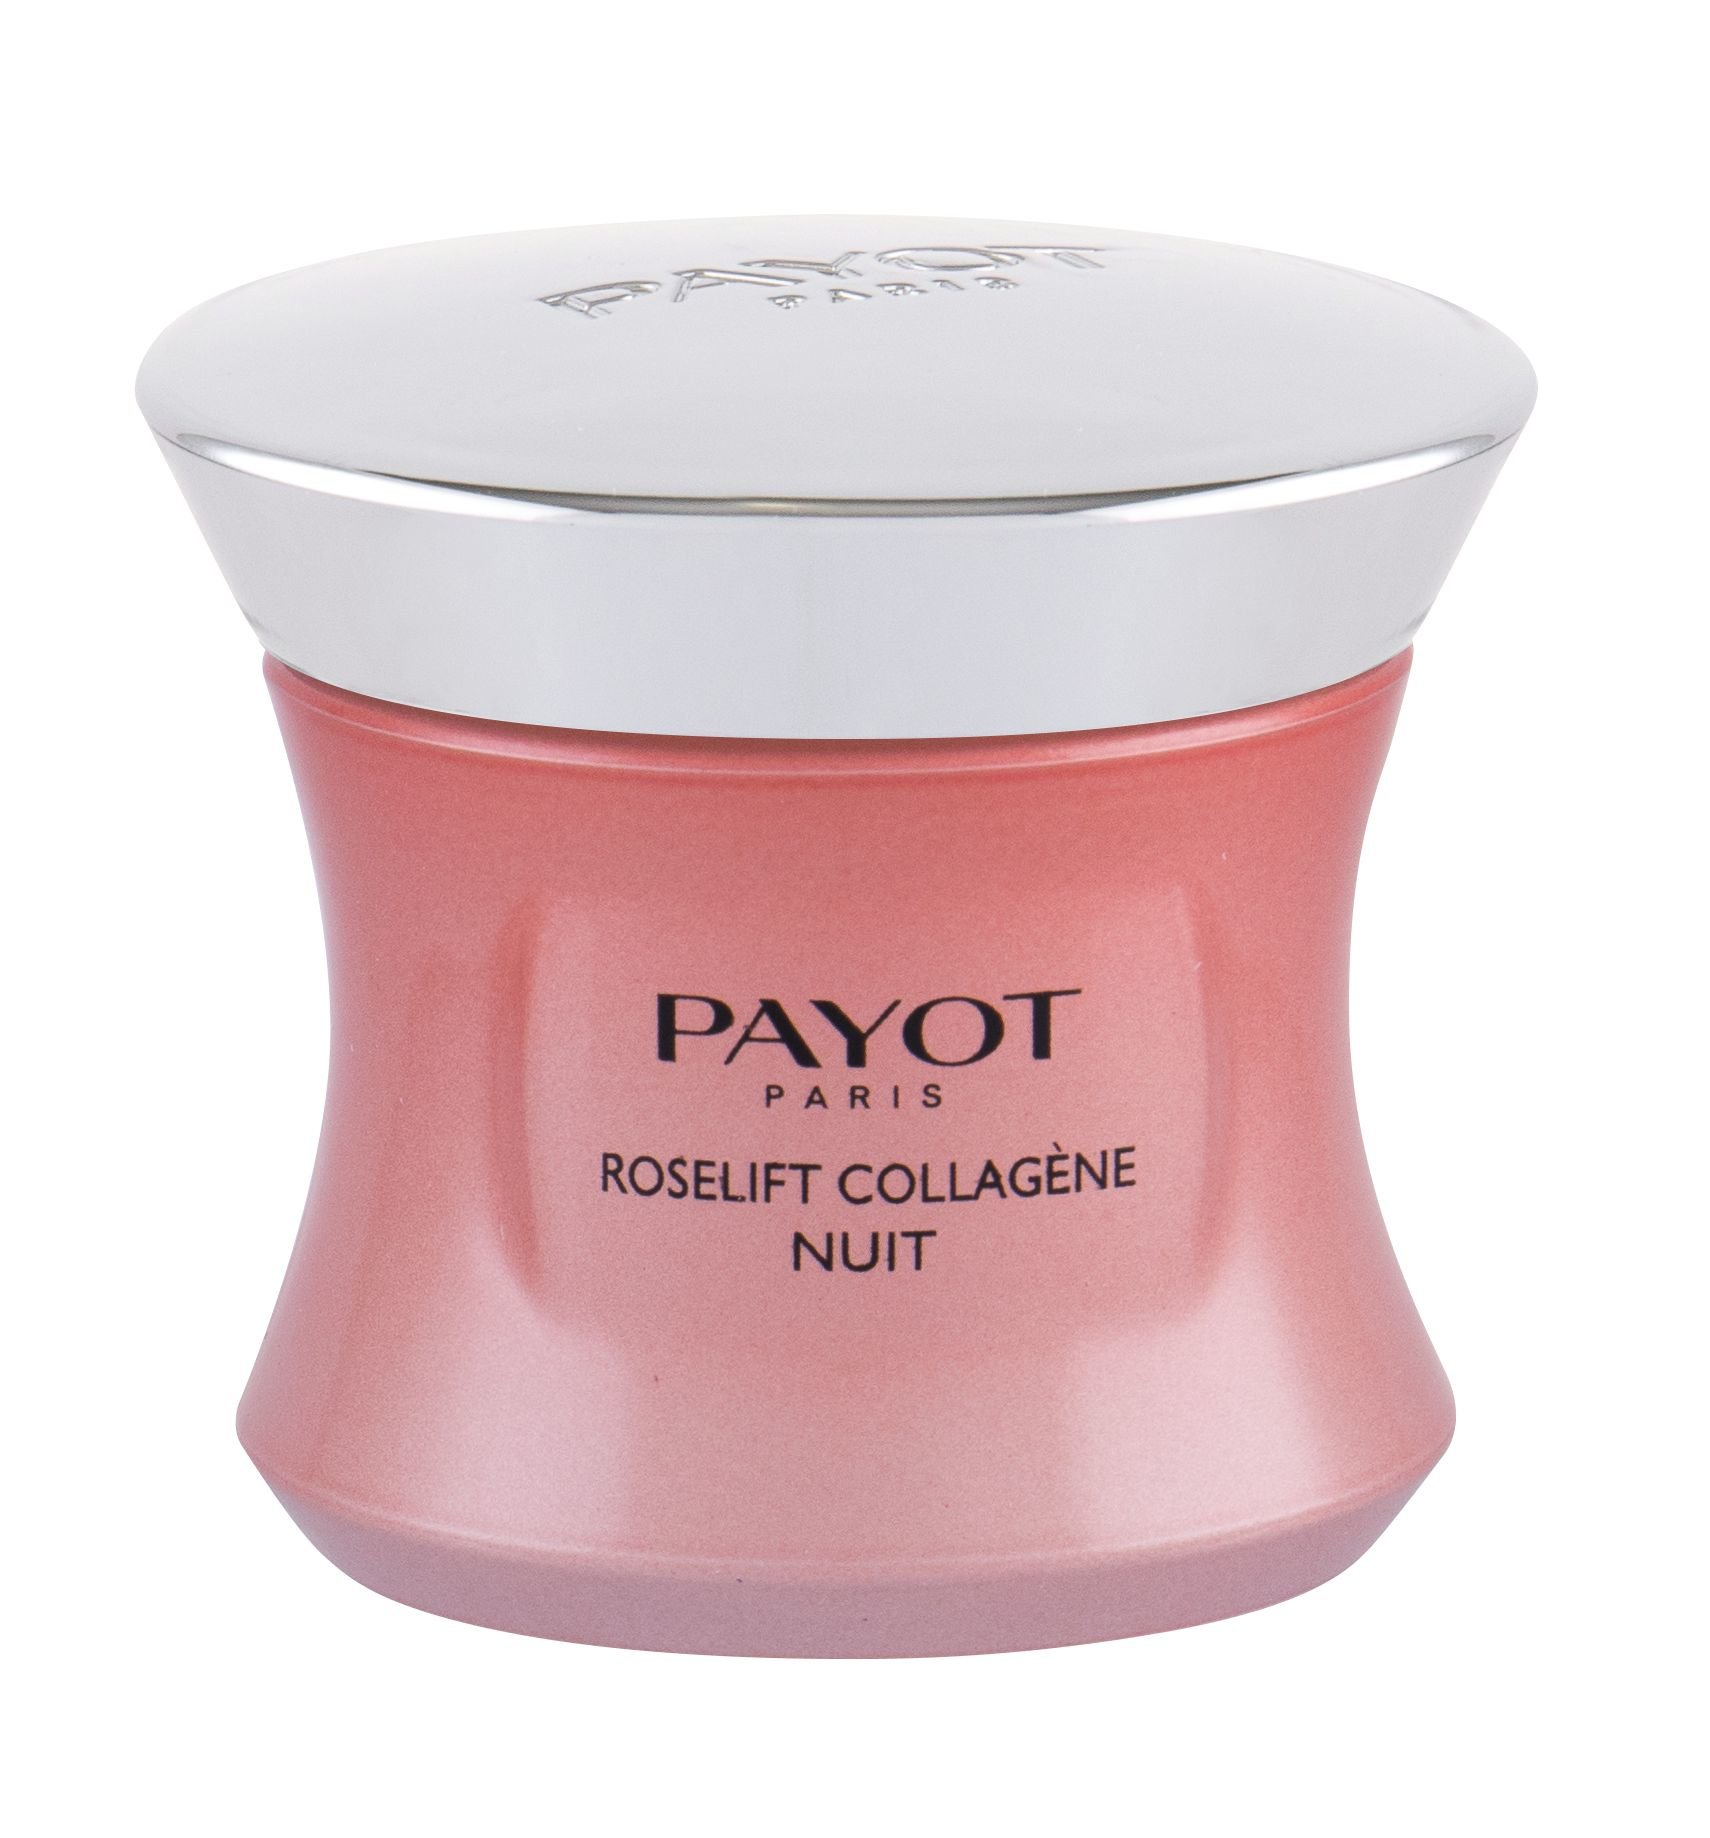 PAYOT Roselift Collagéne Night Skin Cream 50ml